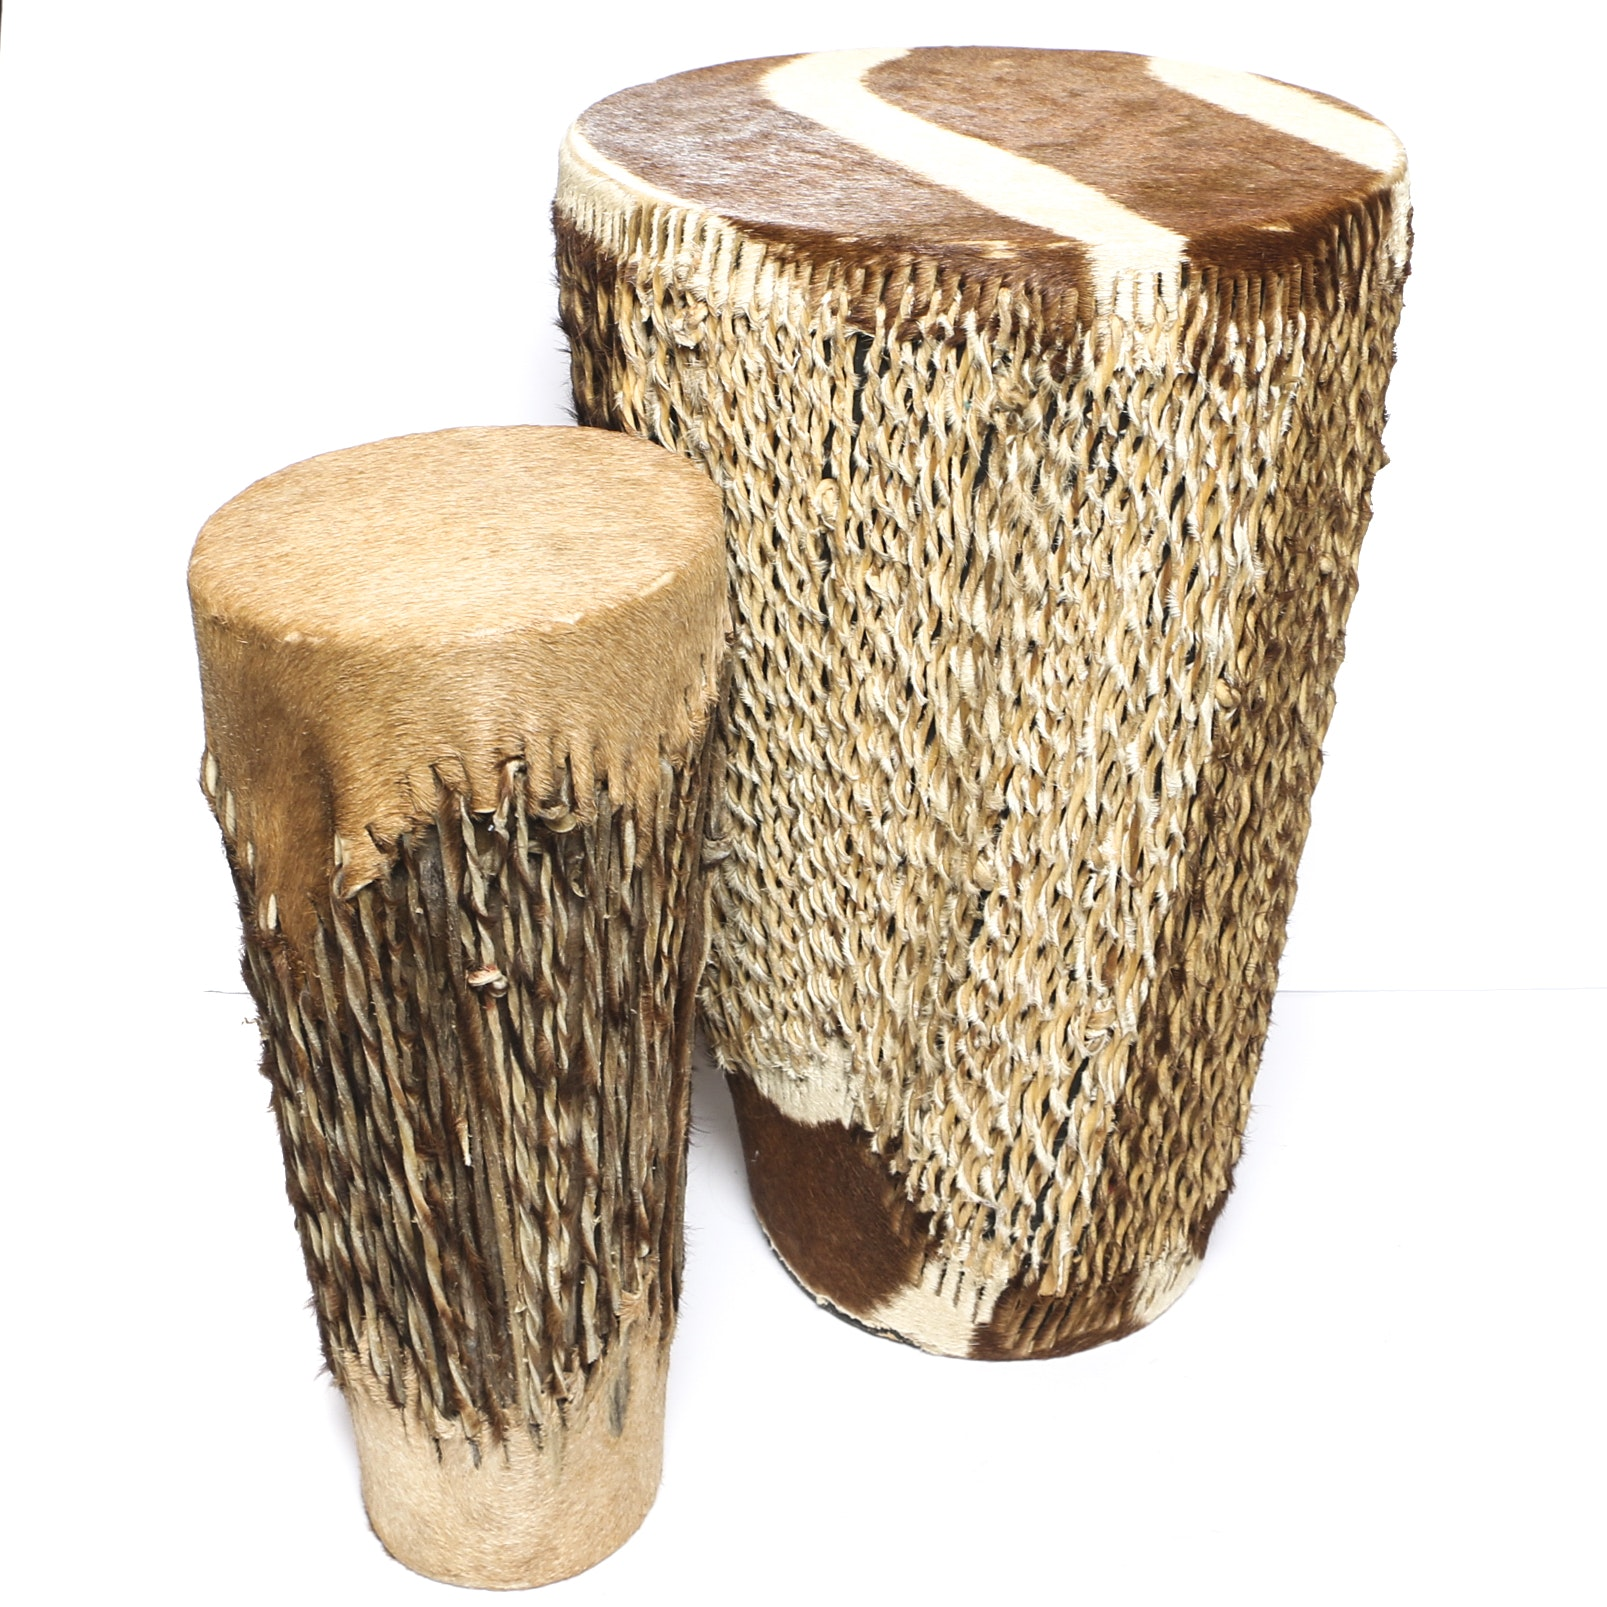 Handmade Drums with Bongo and Impala Hide Heads